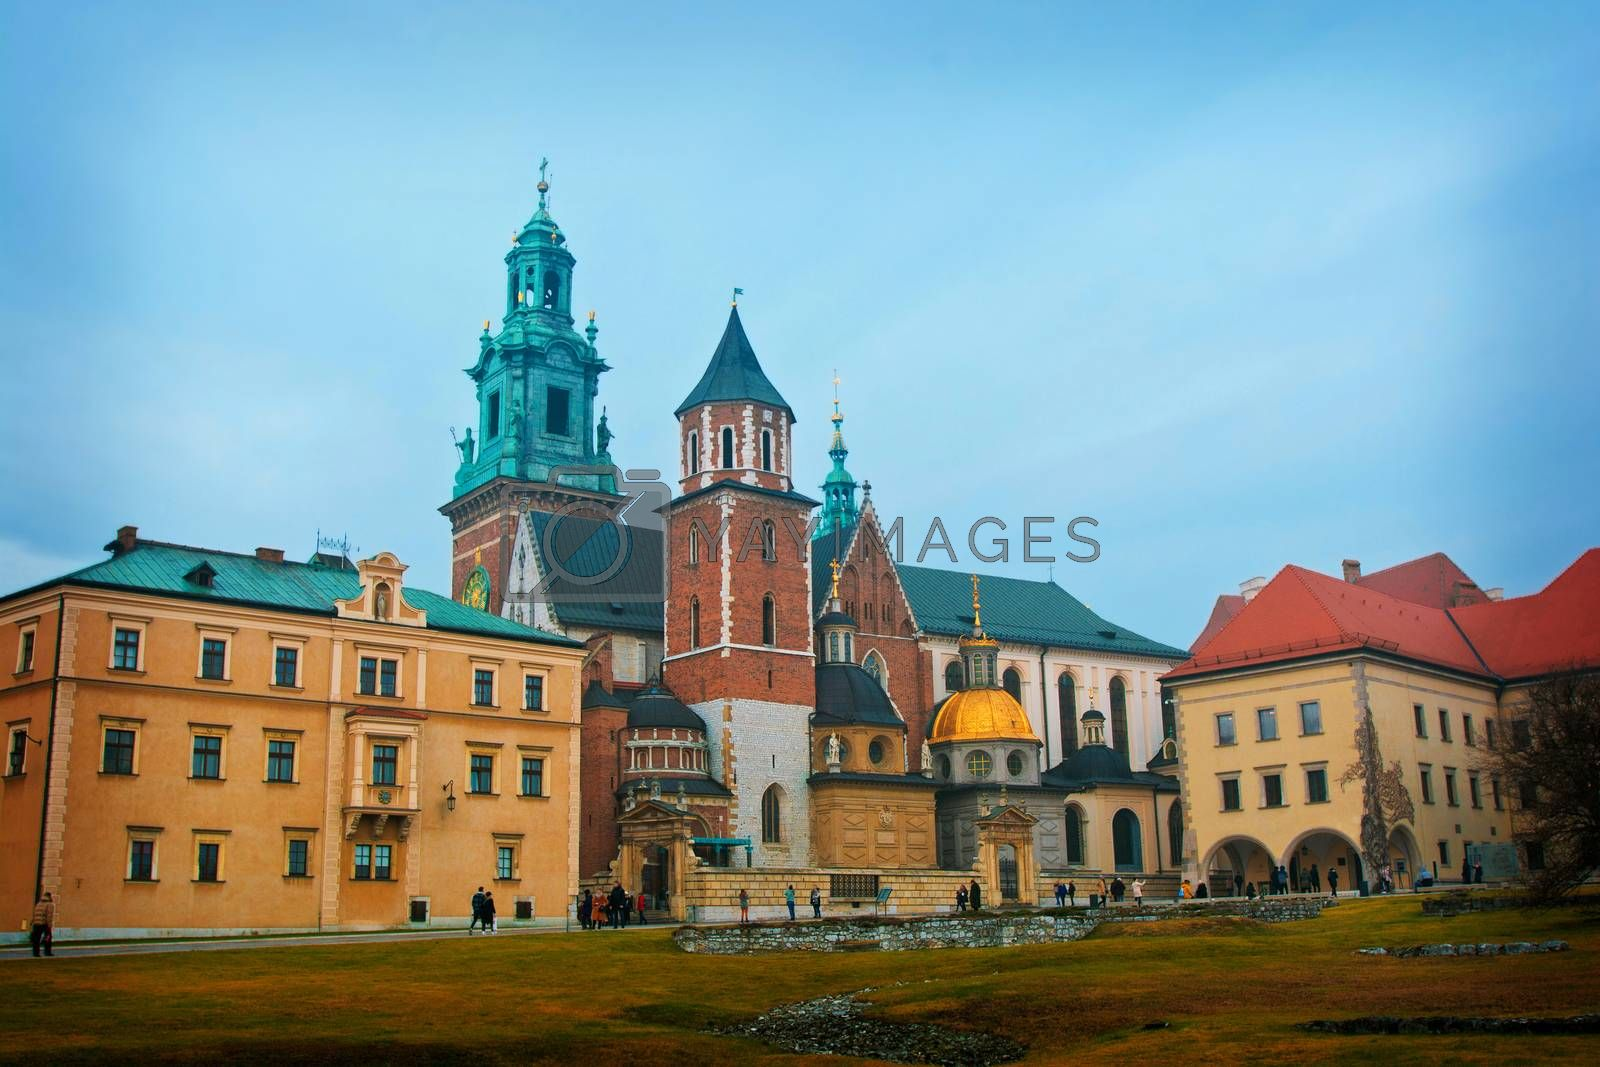 View of Wawel in Cracow, Poland.